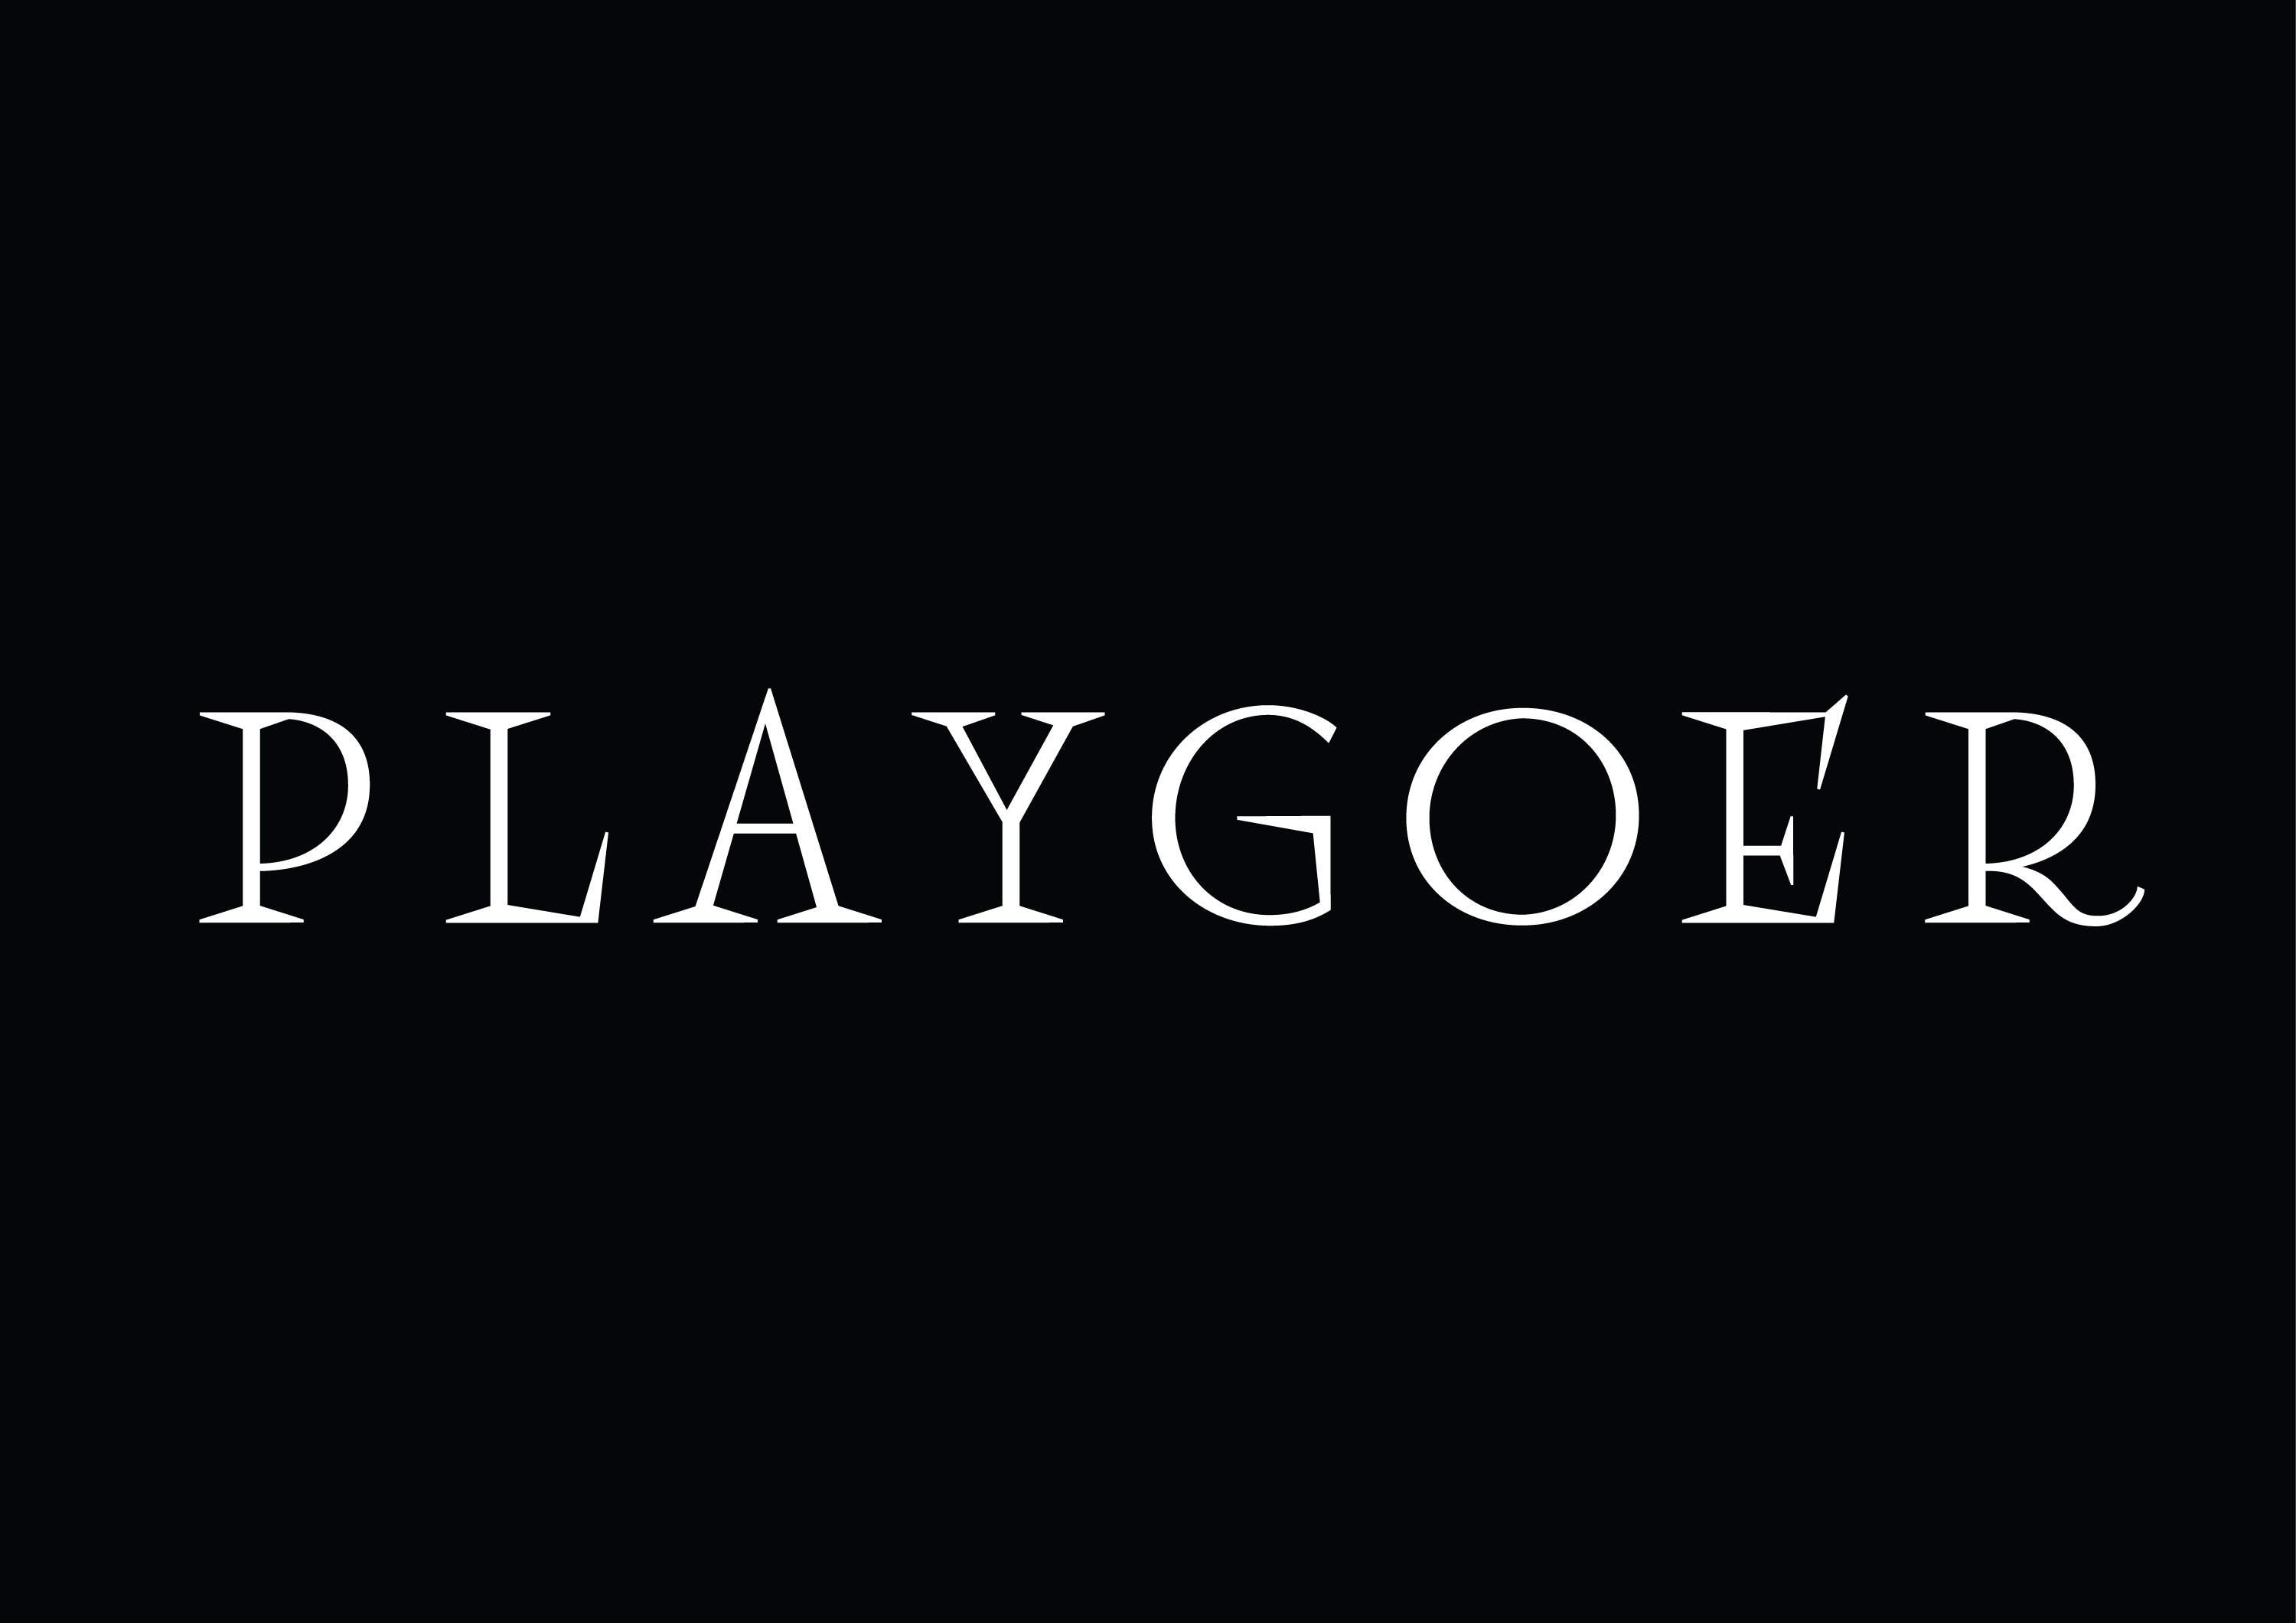 4_playgoer